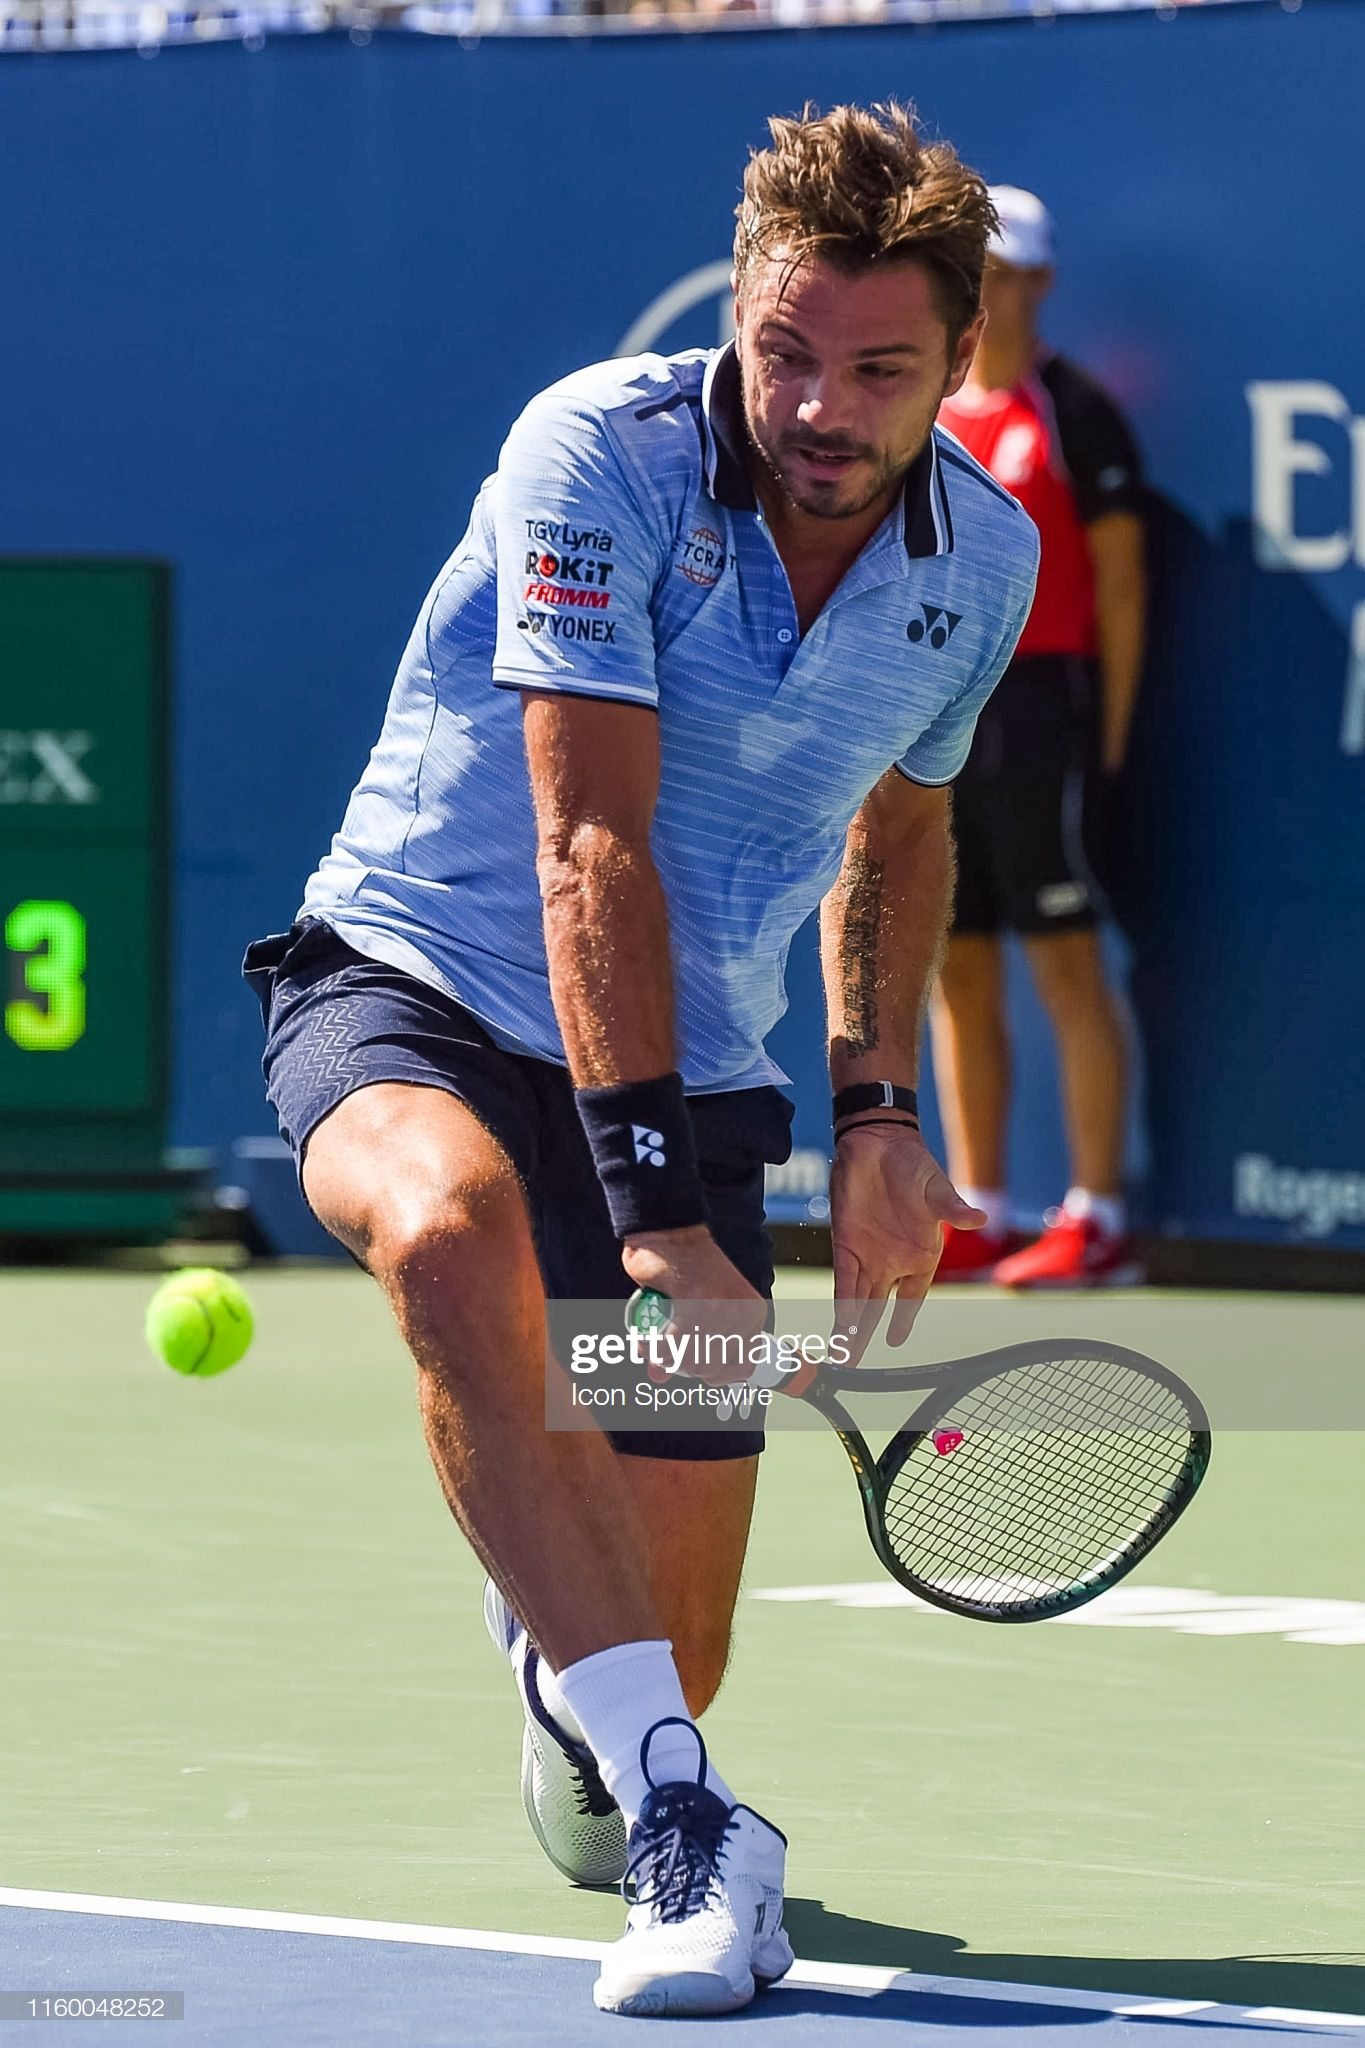 Stan Wawrinka returns the ball during the ATP Coupe Rogers